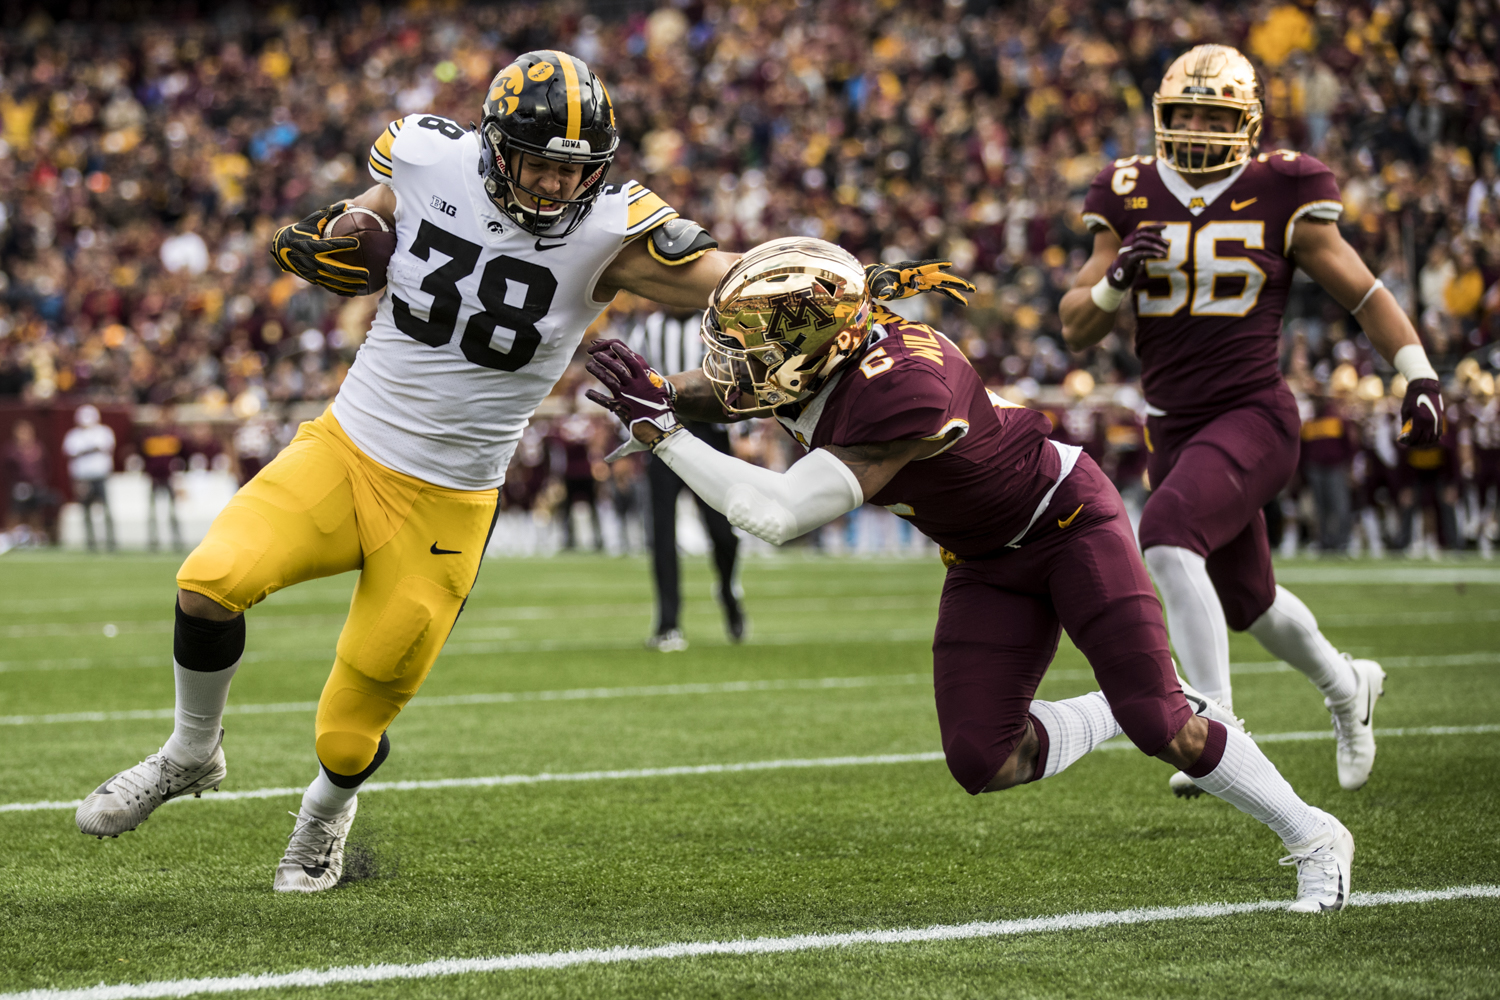 Iowa tight end T.J. Hockenson scores on a fake field goal during Iowa's game against Minnesota at TCF Bank Stadium on Saturday, Oct. 6, 2018.